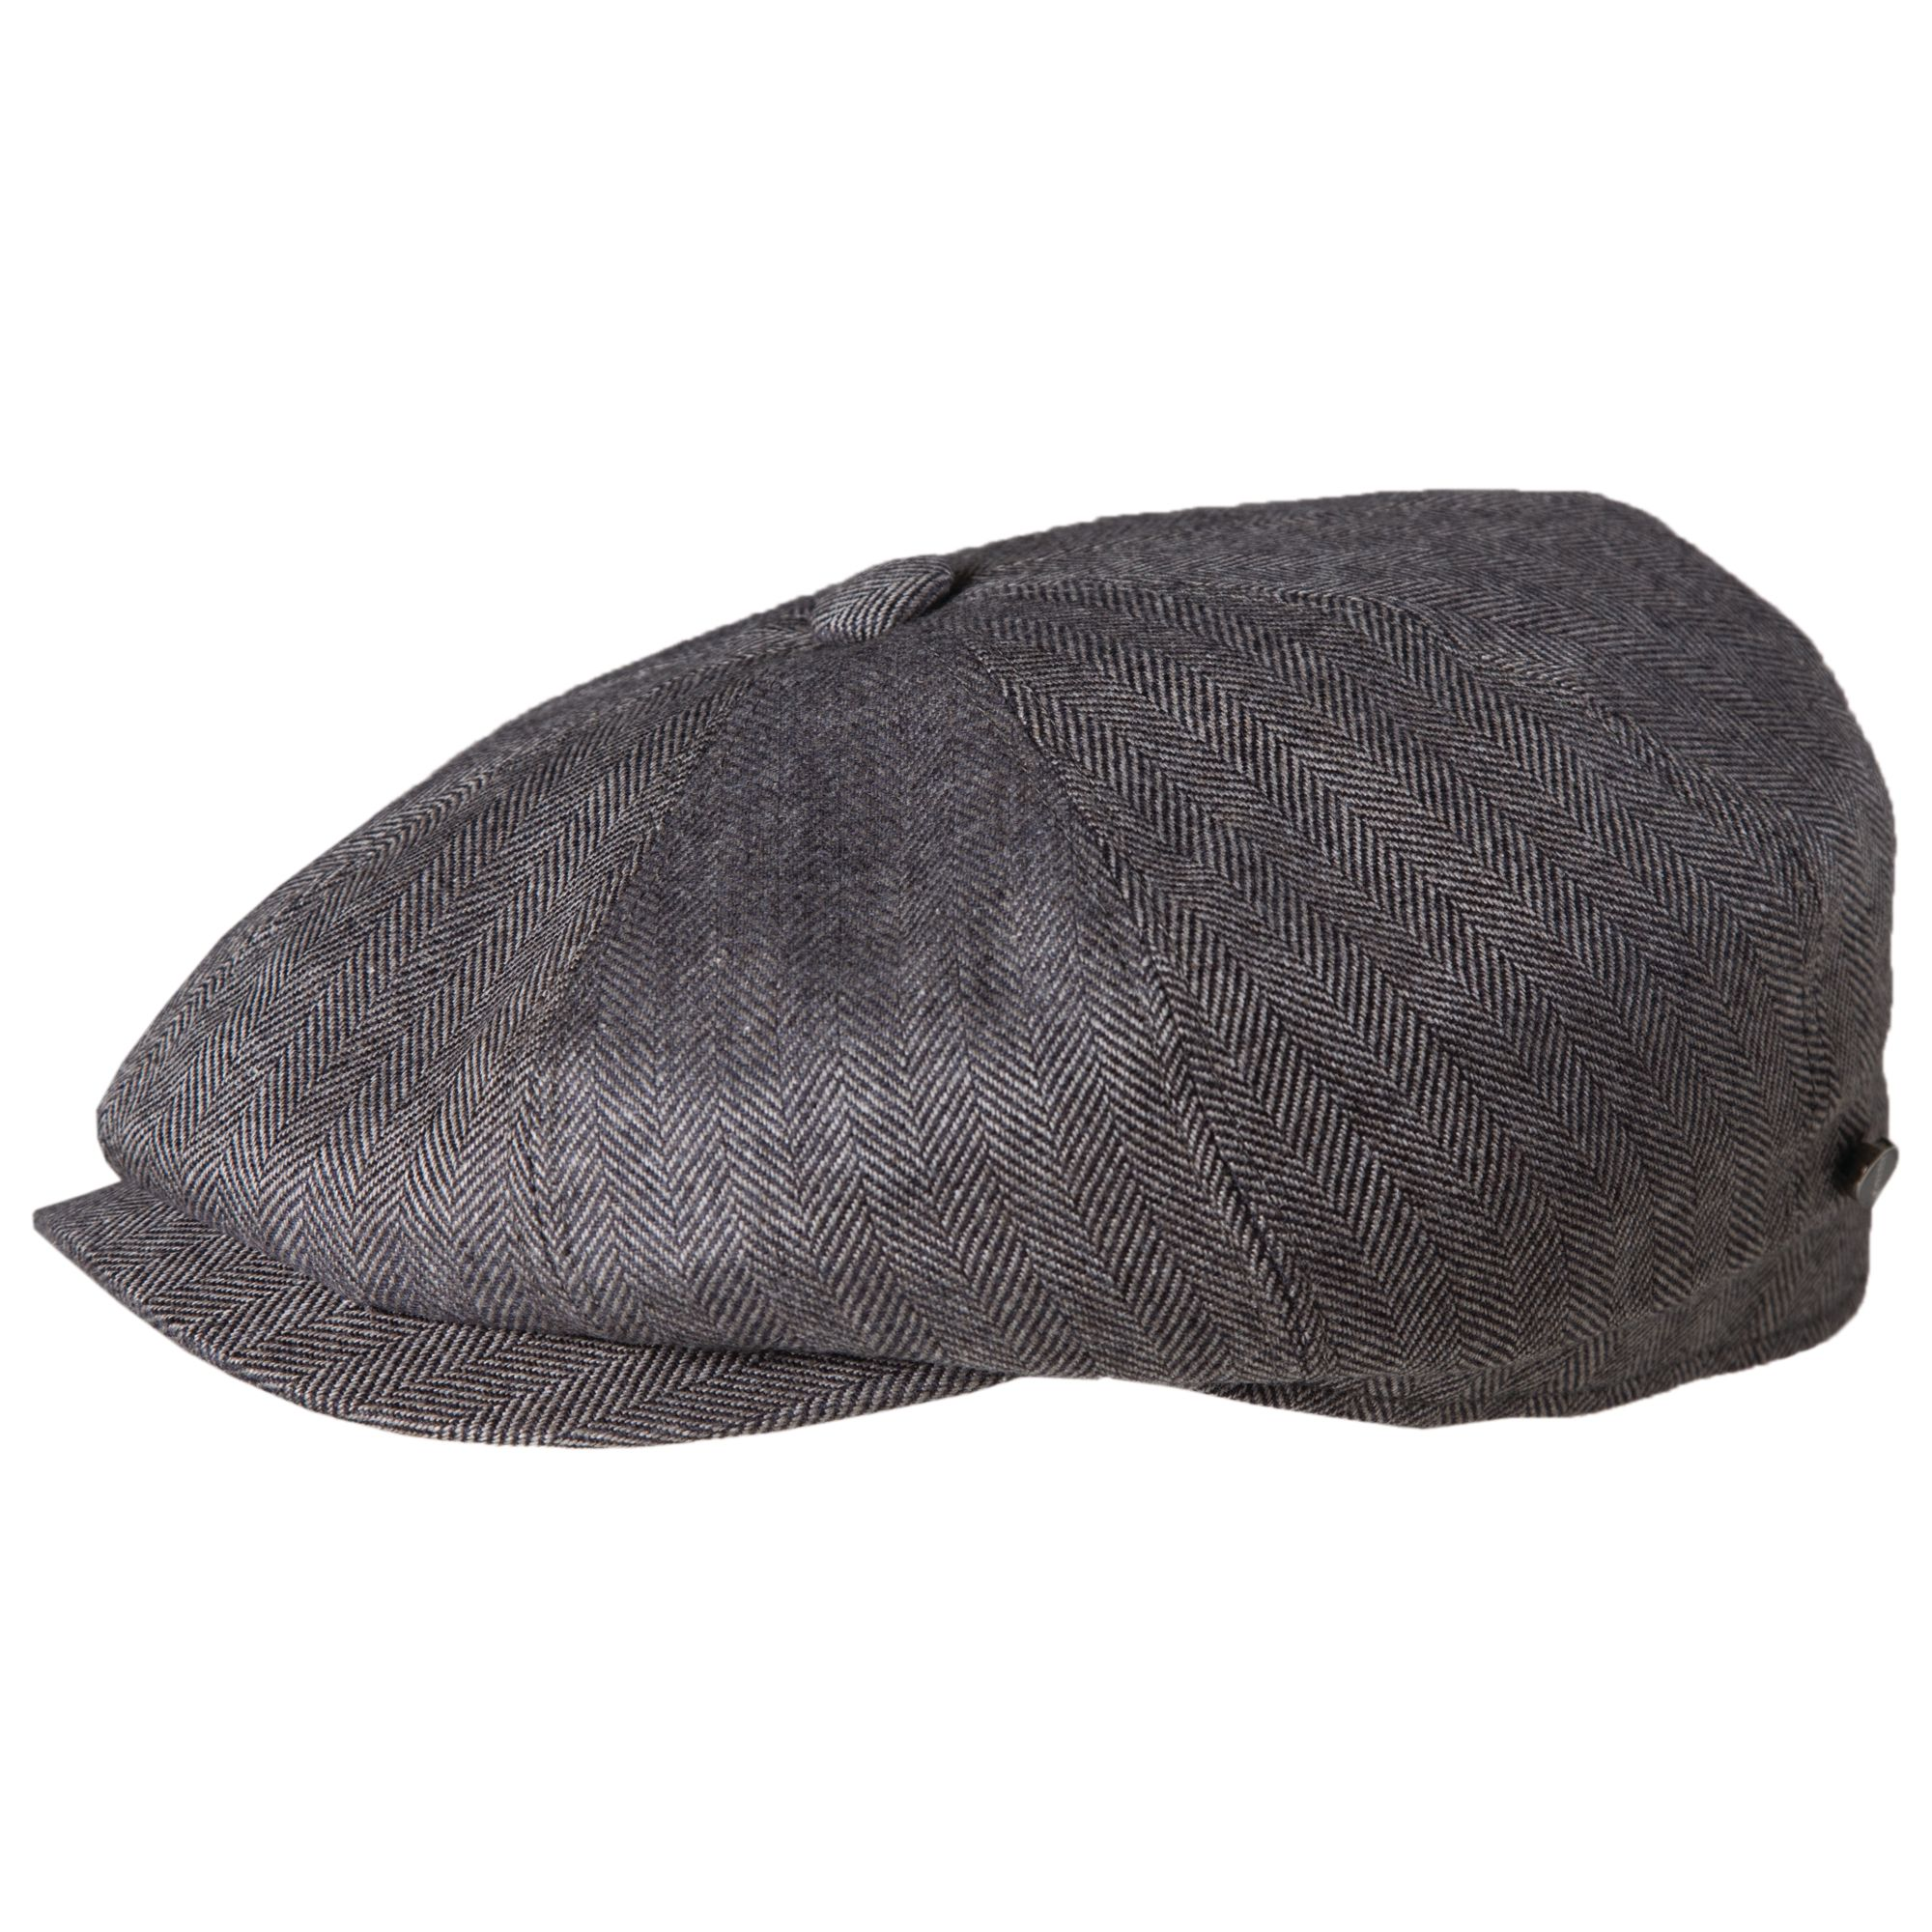 19809dd8b3675 New Stetson Hatteras Cashmere Silk Blend Newsboy Hat Cap in 2019 ...